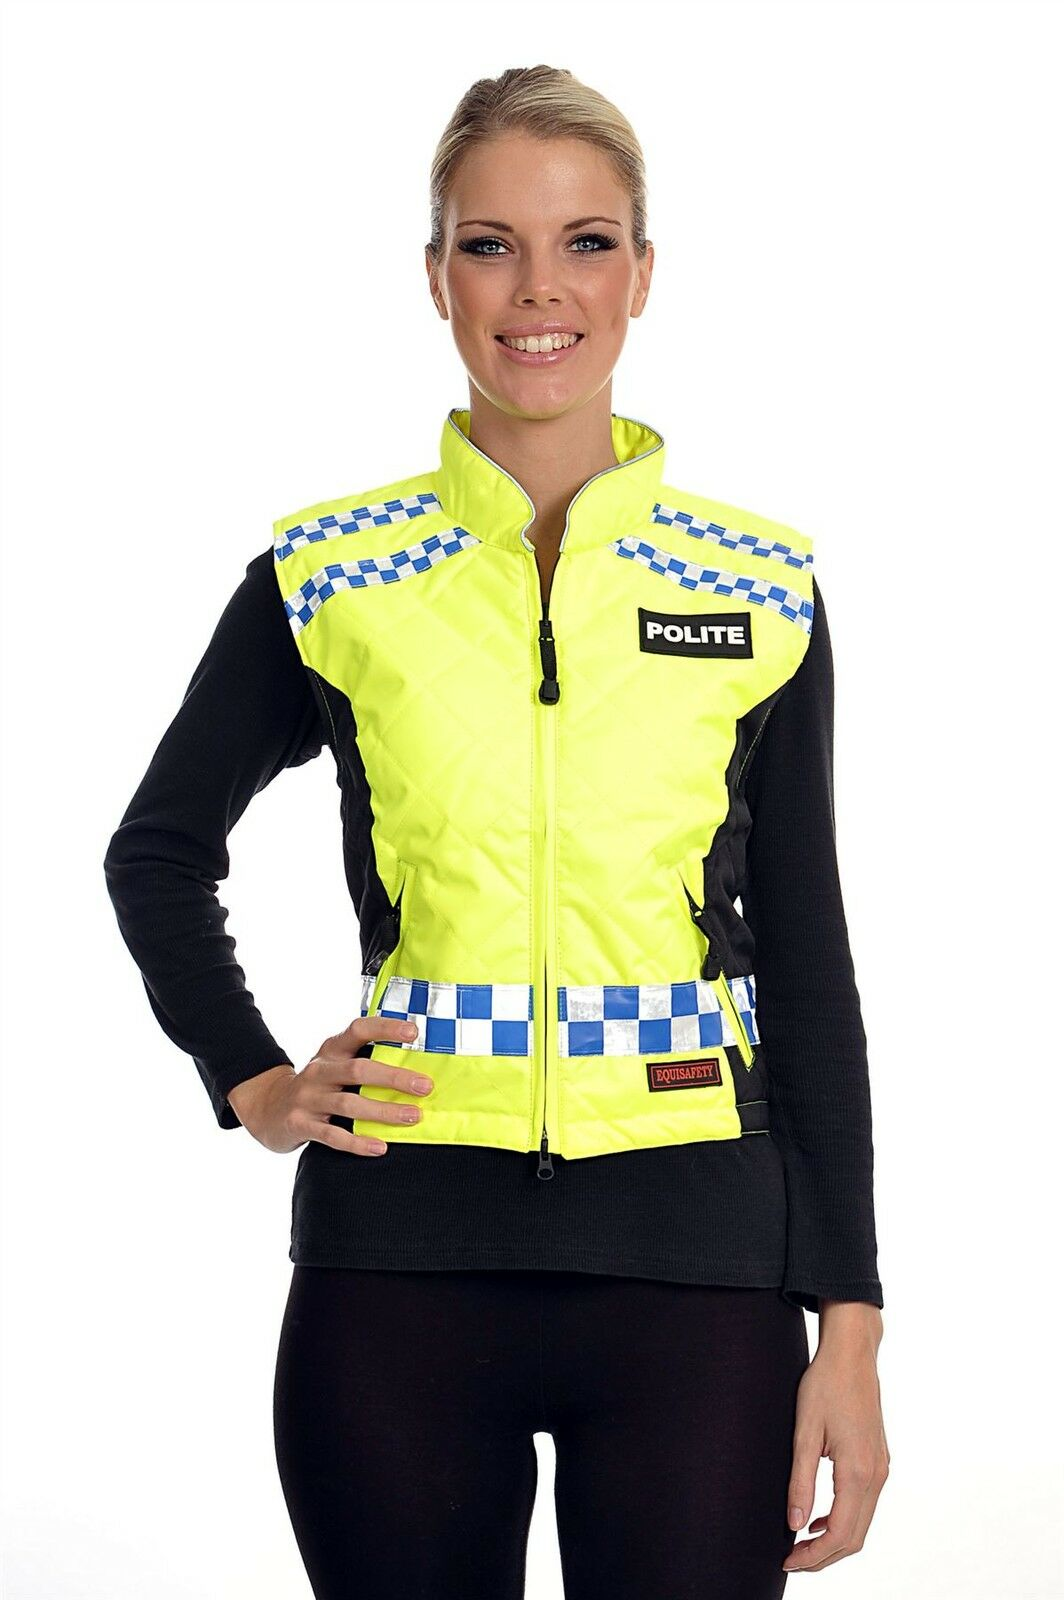 EQUISAFETY POLITE QUILTED GILET PLEASE SLOW DOWN DOWN DOWN EQUINE HORSE RIDER SAFETY WEAR 8f4e76